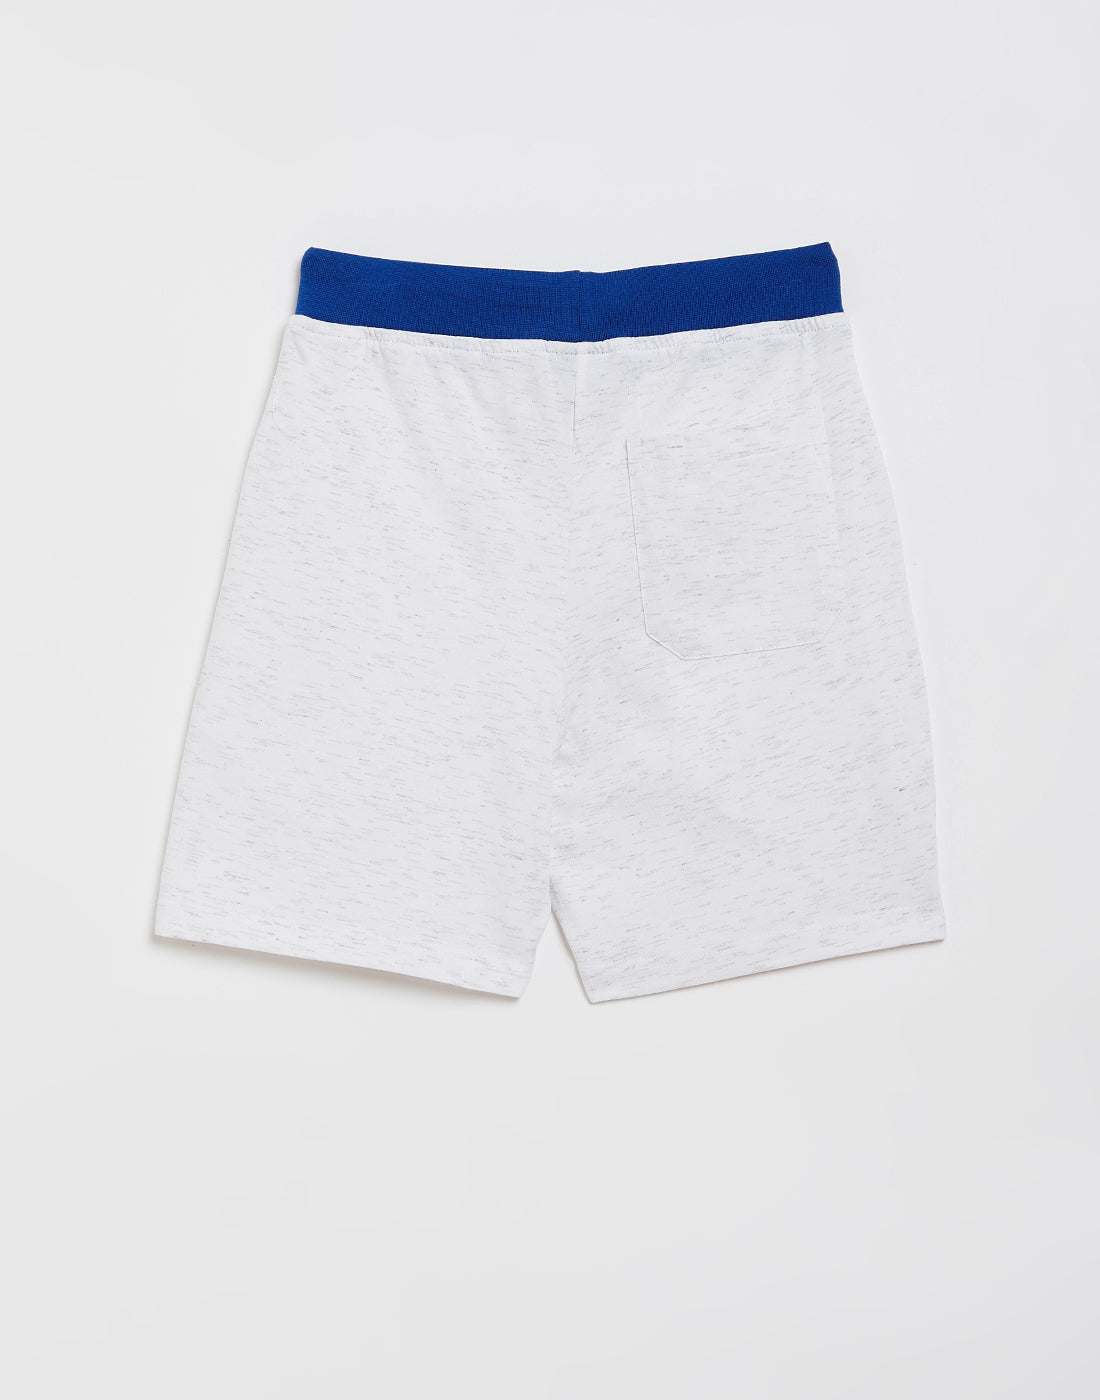 Octave Boys White Avengers Printed Shorts